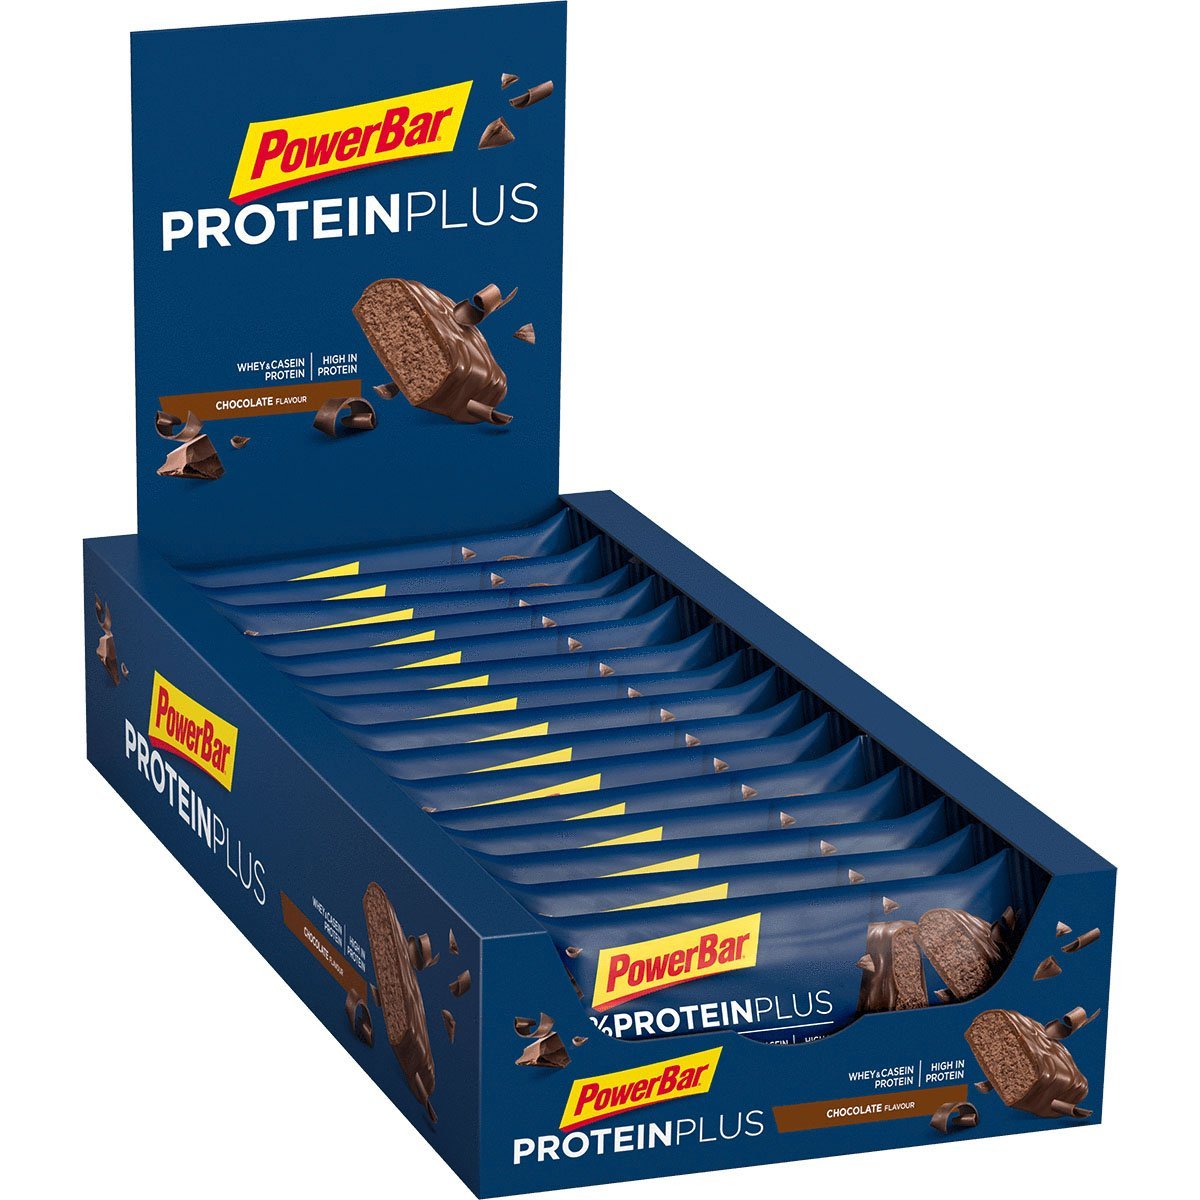 Image of PowerBar 30 ProteinPlus Protein Bar - Pack of 15